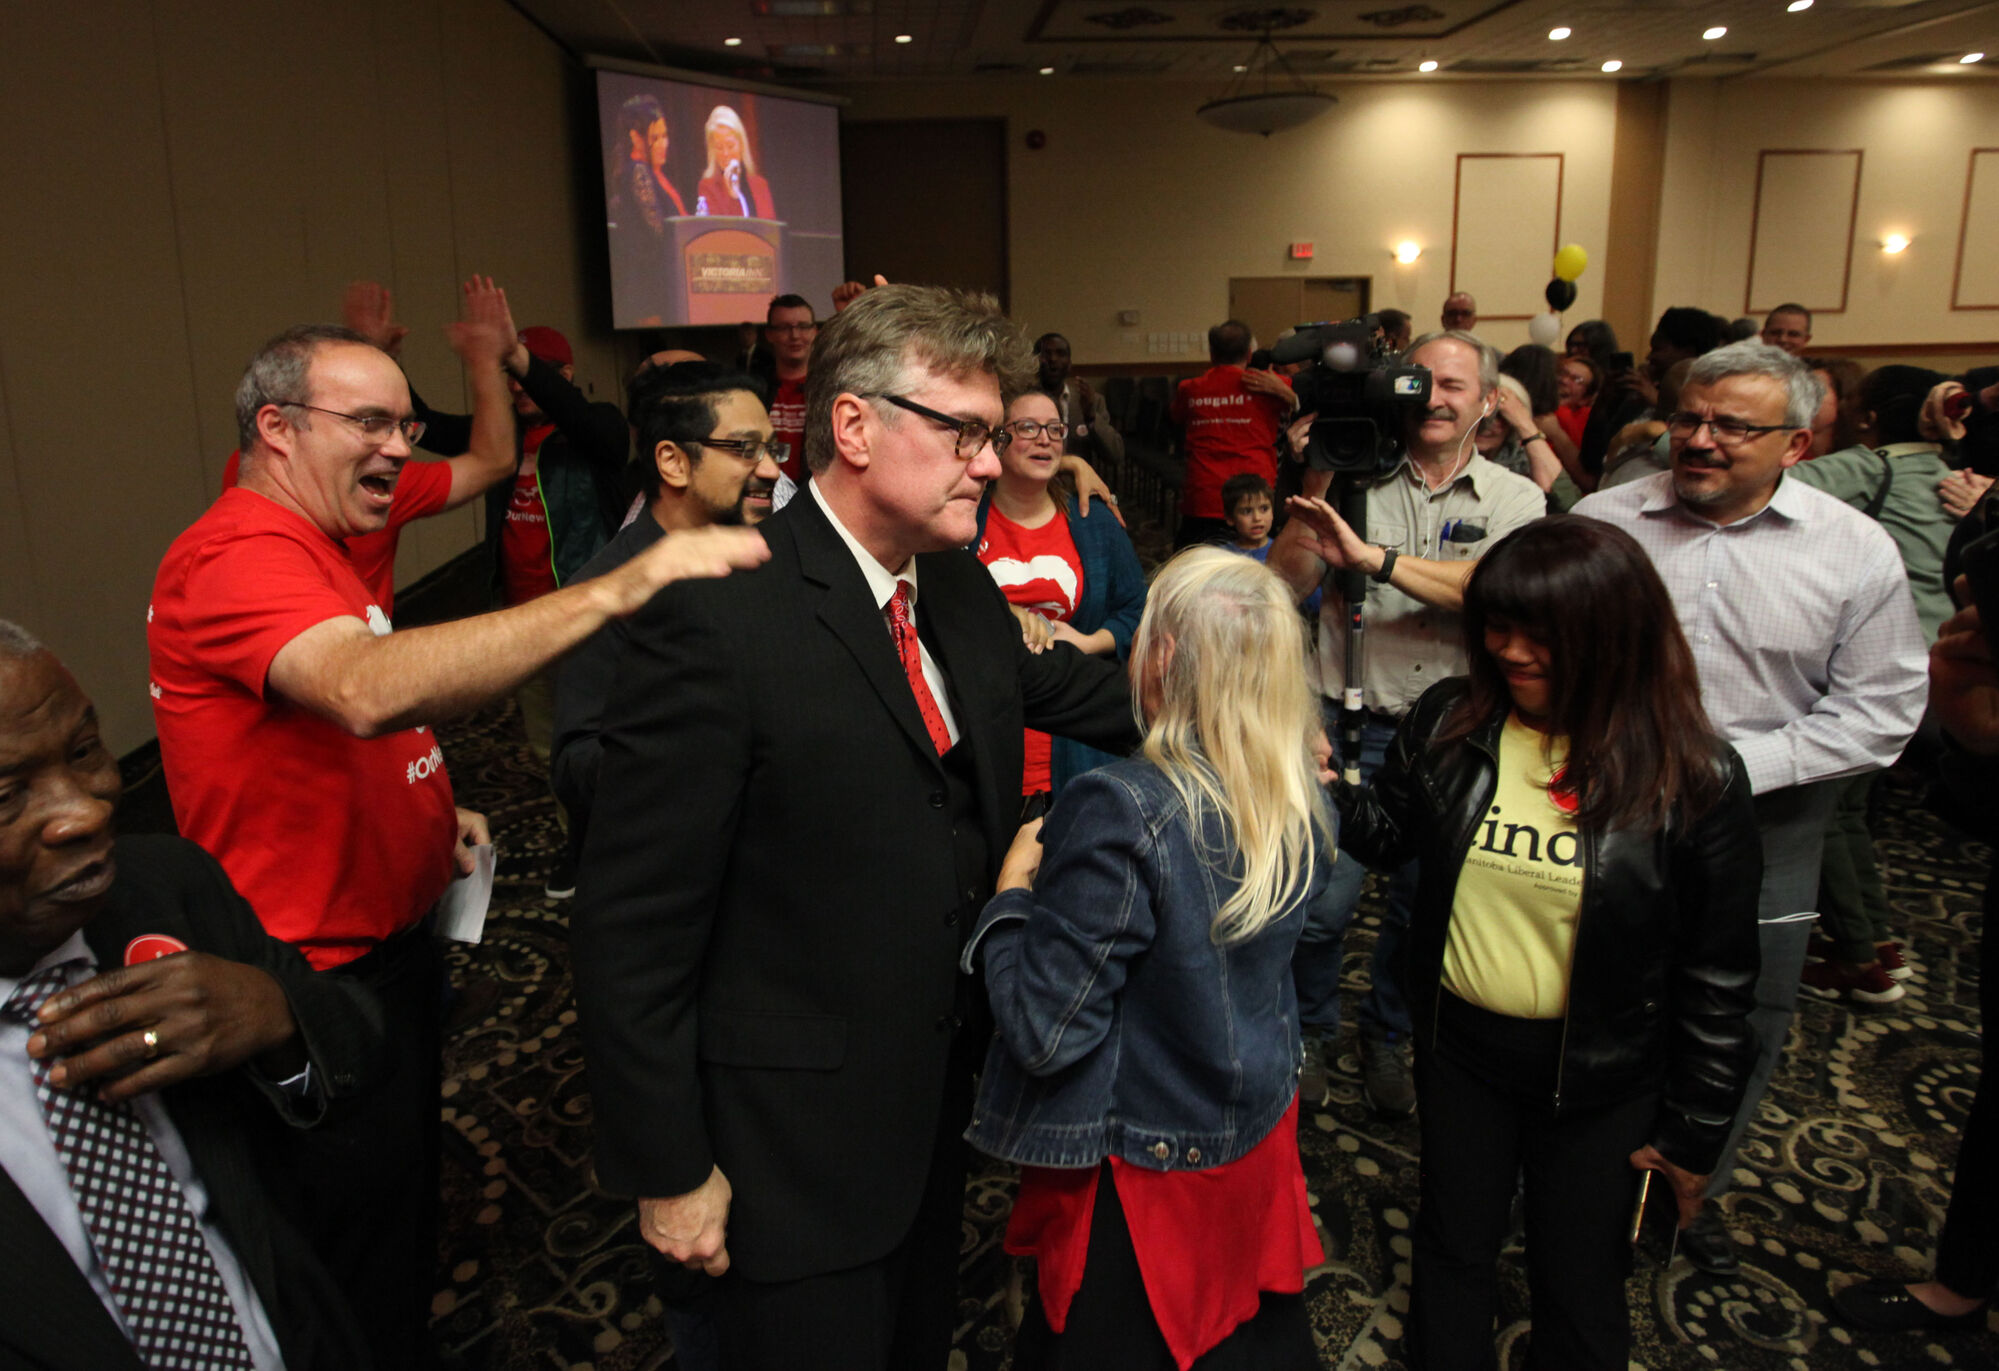 RUTH BONNEVILLE / WINNIPEG FREE PRESS Liberal Leader Dougald Lamont needs to seek a seat in the legislature.  Dugald Lamont is hugged by supporters after being announced the winner of the Manitoba Liberal leadership race at Victoria Inn Saturday.     Oct 21,, 2017